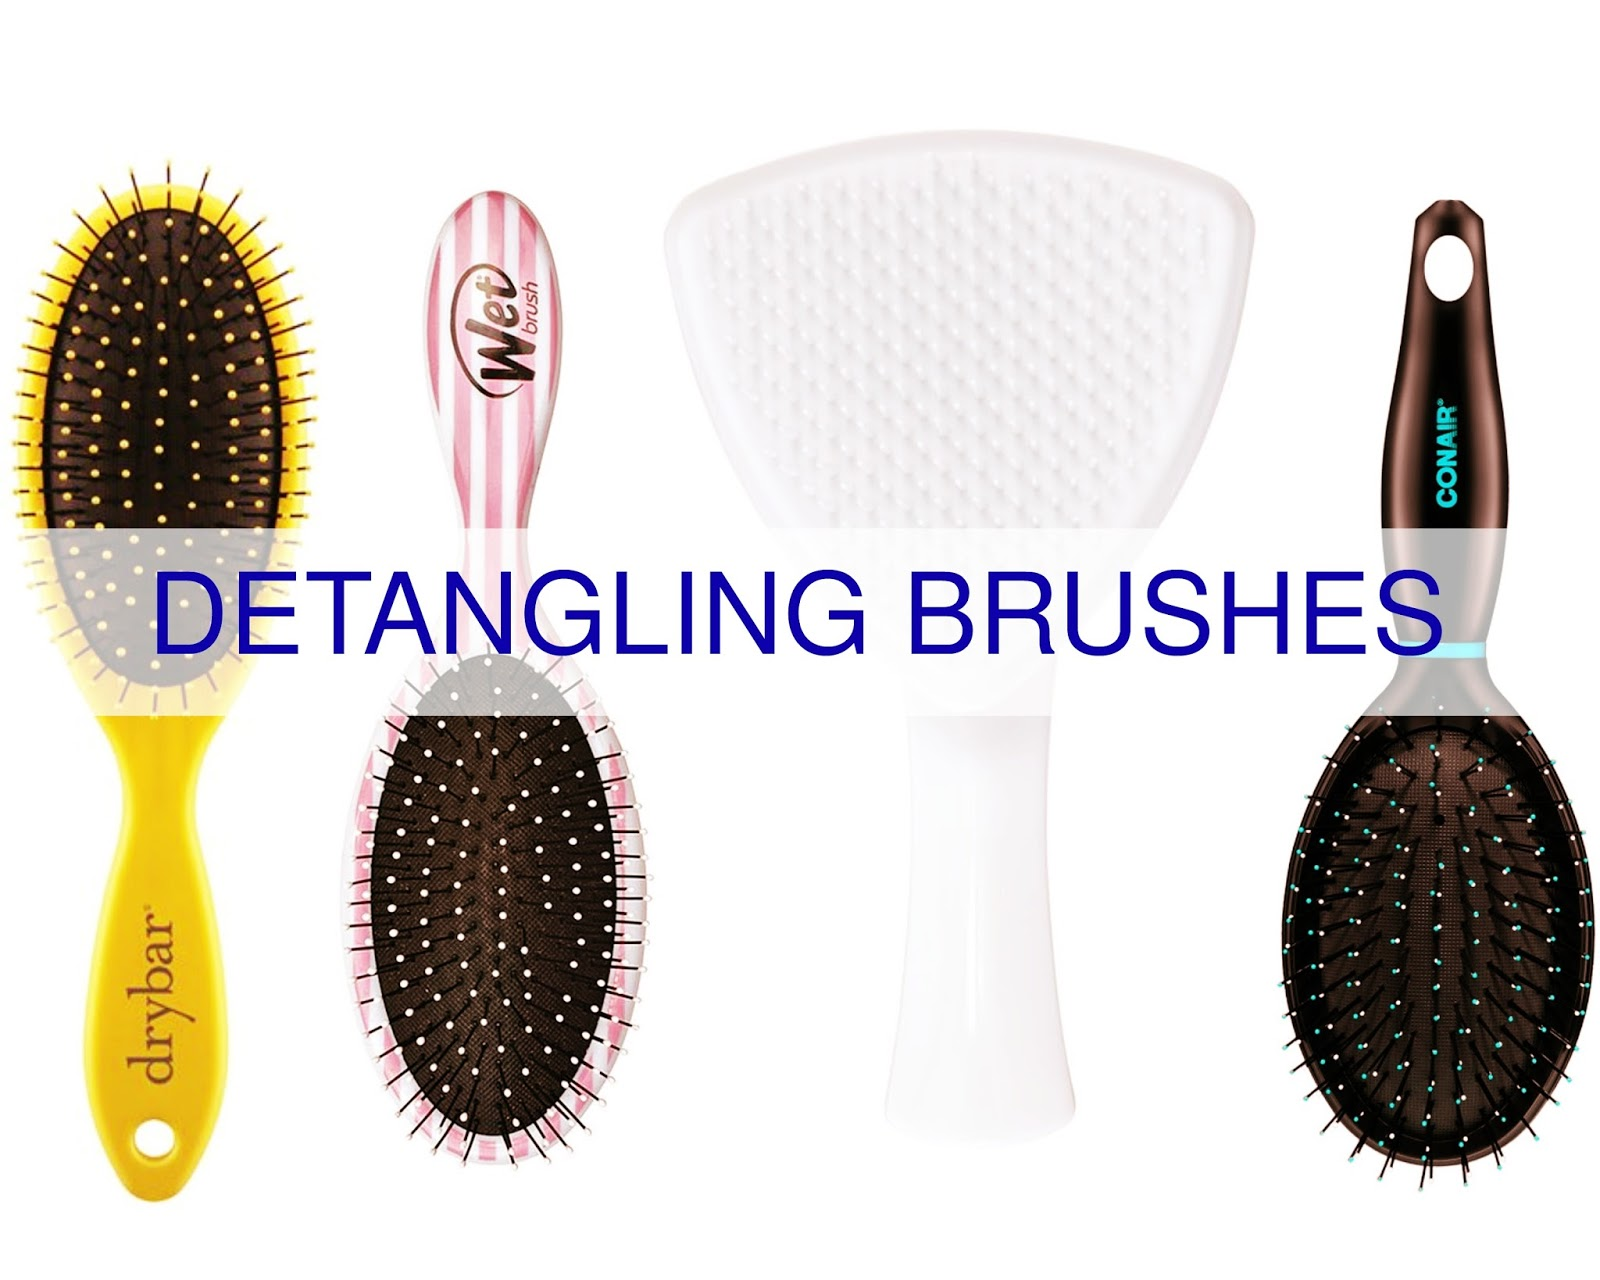 Click here to buy the DRYBAR 'LEMON DROP' DAILY DETANGLER BRUSH, an awesome tool at taming your tangles!